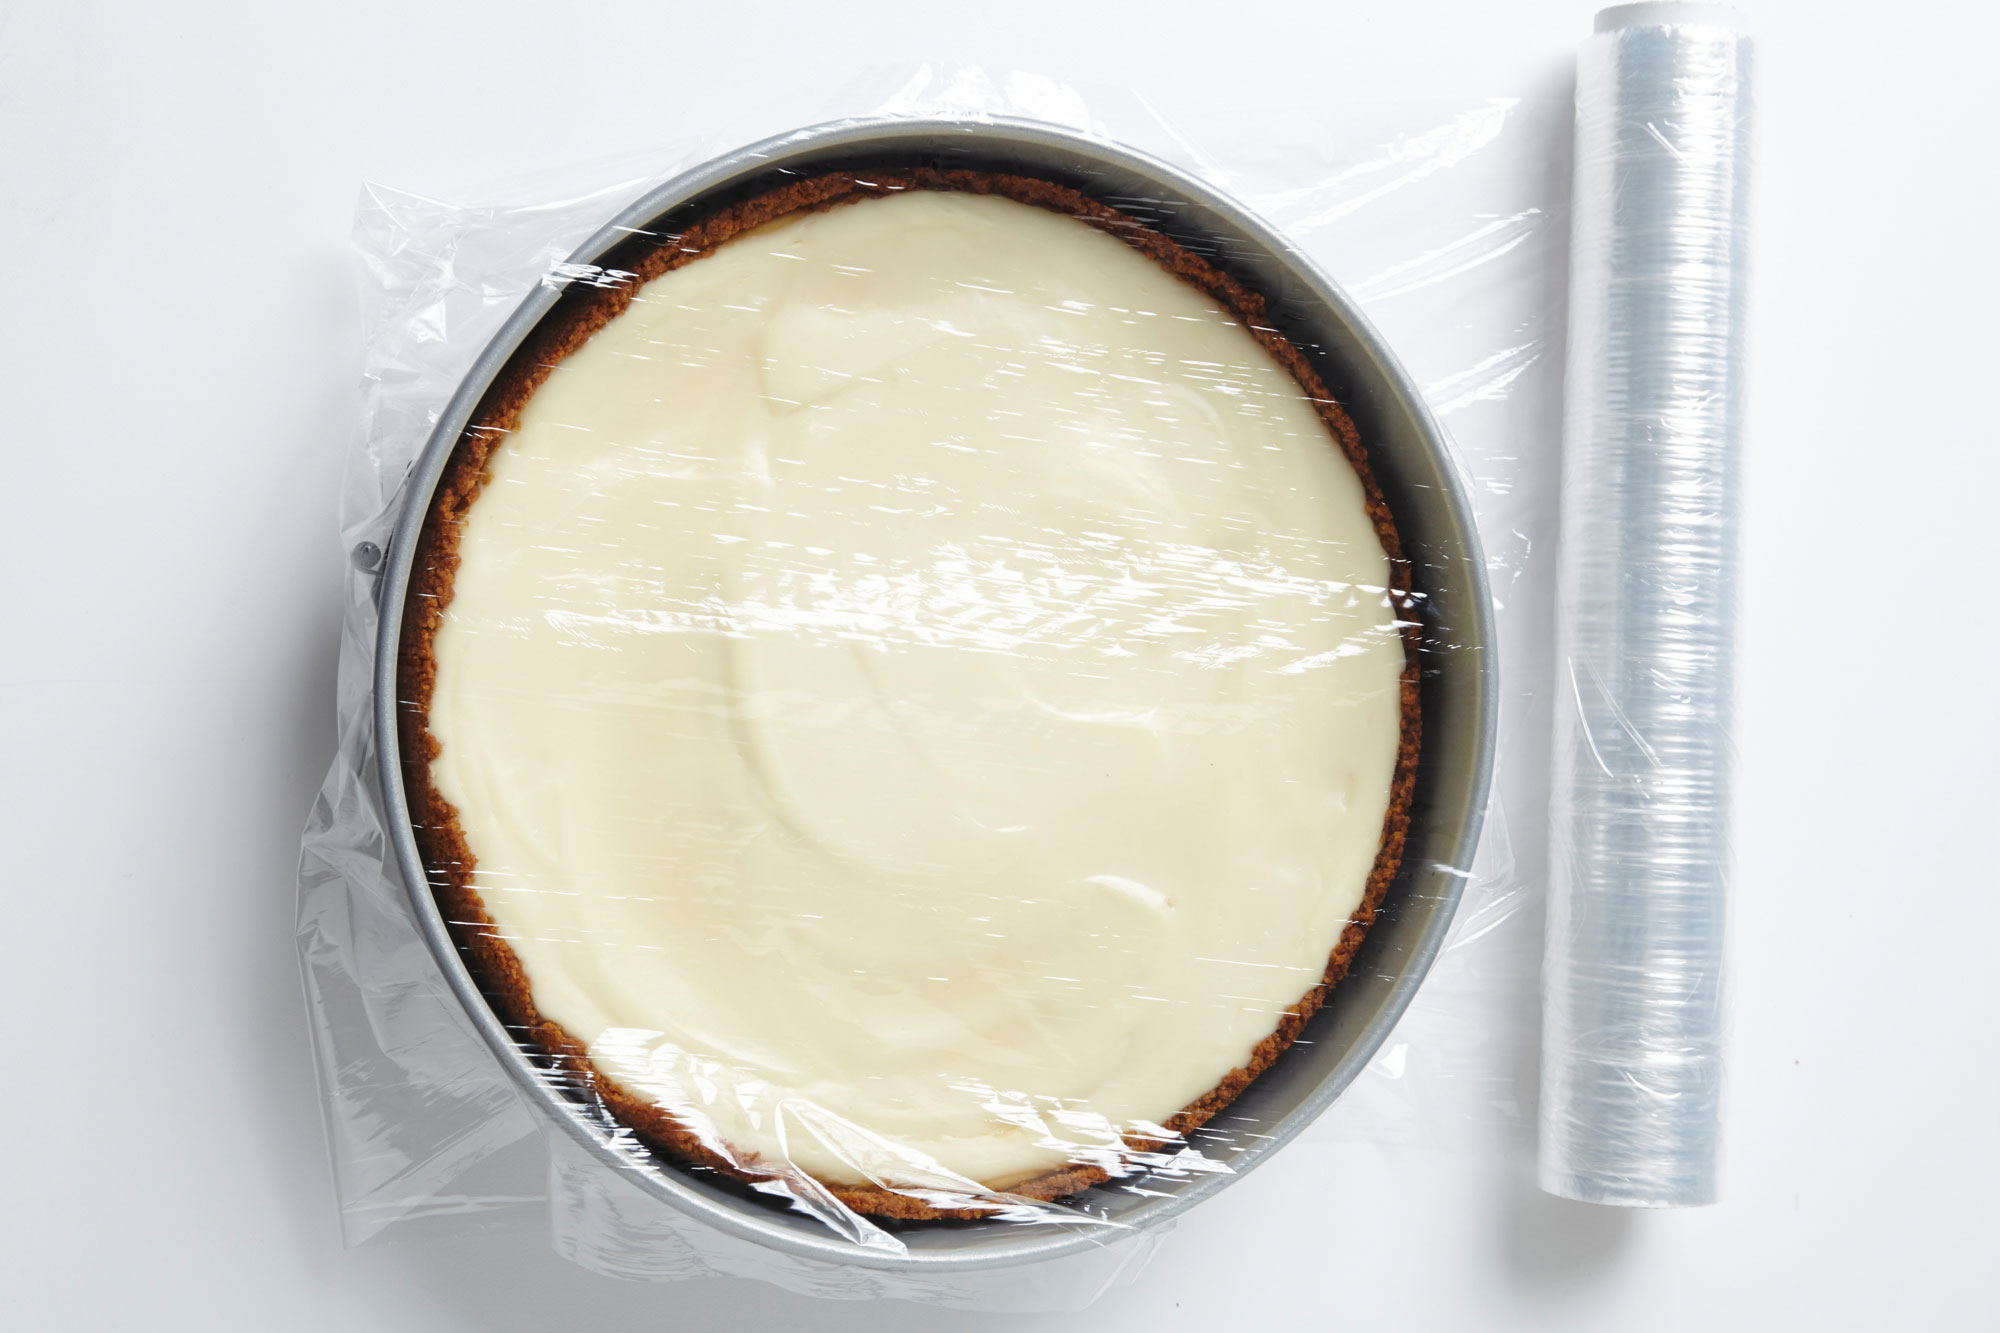 cheesecake in springform pan with plastic wrap over top